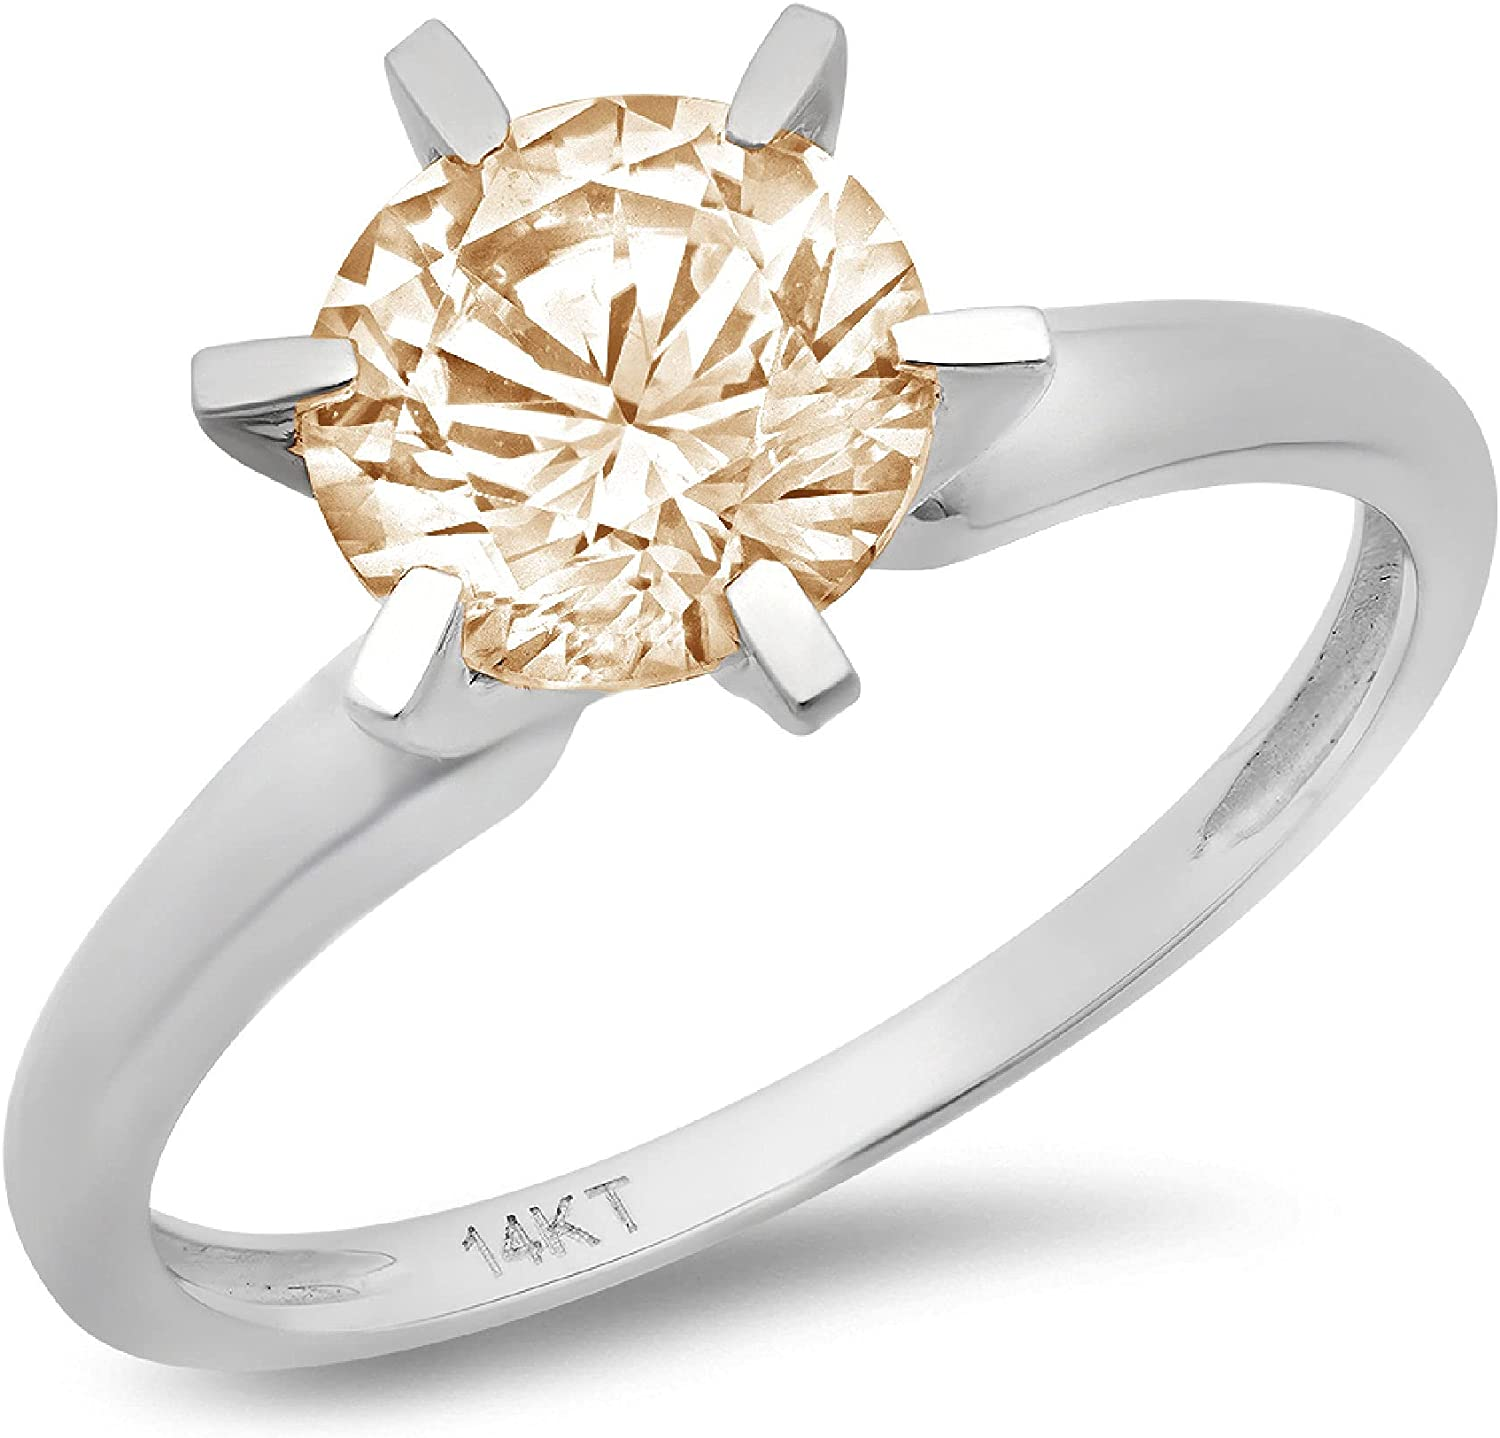 Clara Pucci 0.50 ct Brilliant Round Cut Solitaire Natural Brown Morganite Gem 6-Prong Engagement Wedding Bridal Promise Anniversary Ring in Solid 18K White Gold for Women